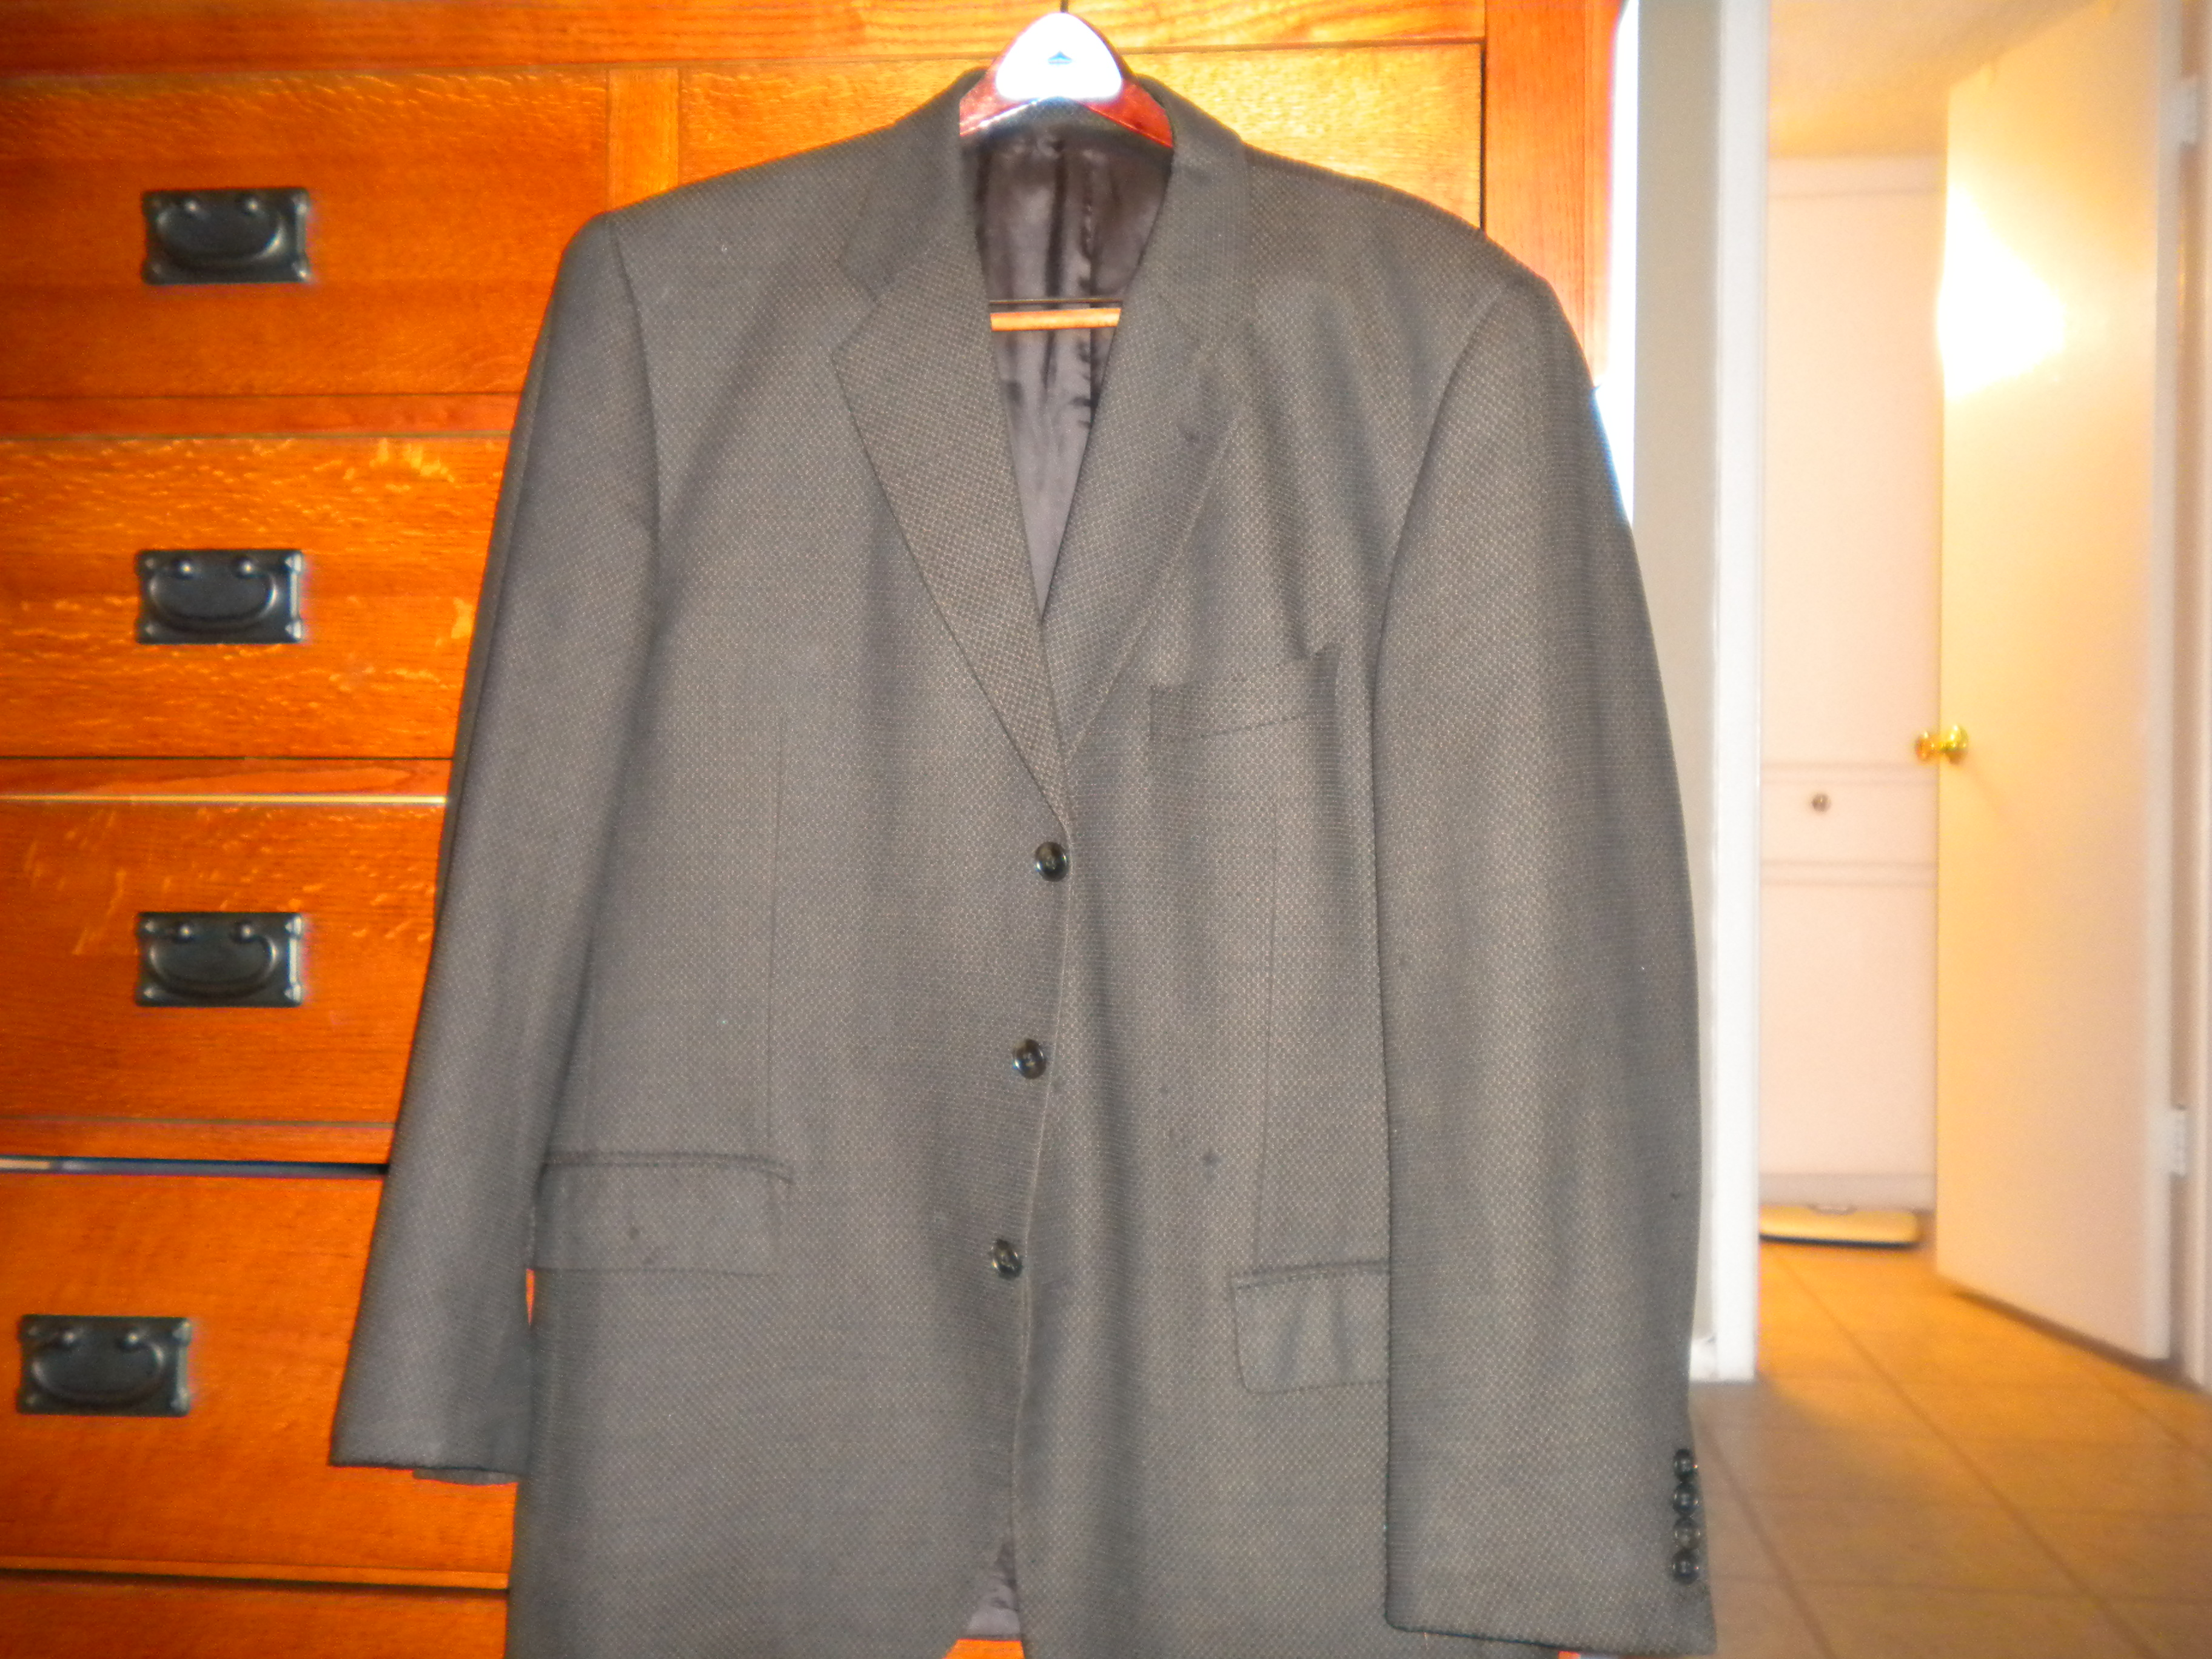 Bespoke Joseph Abboud sports coat